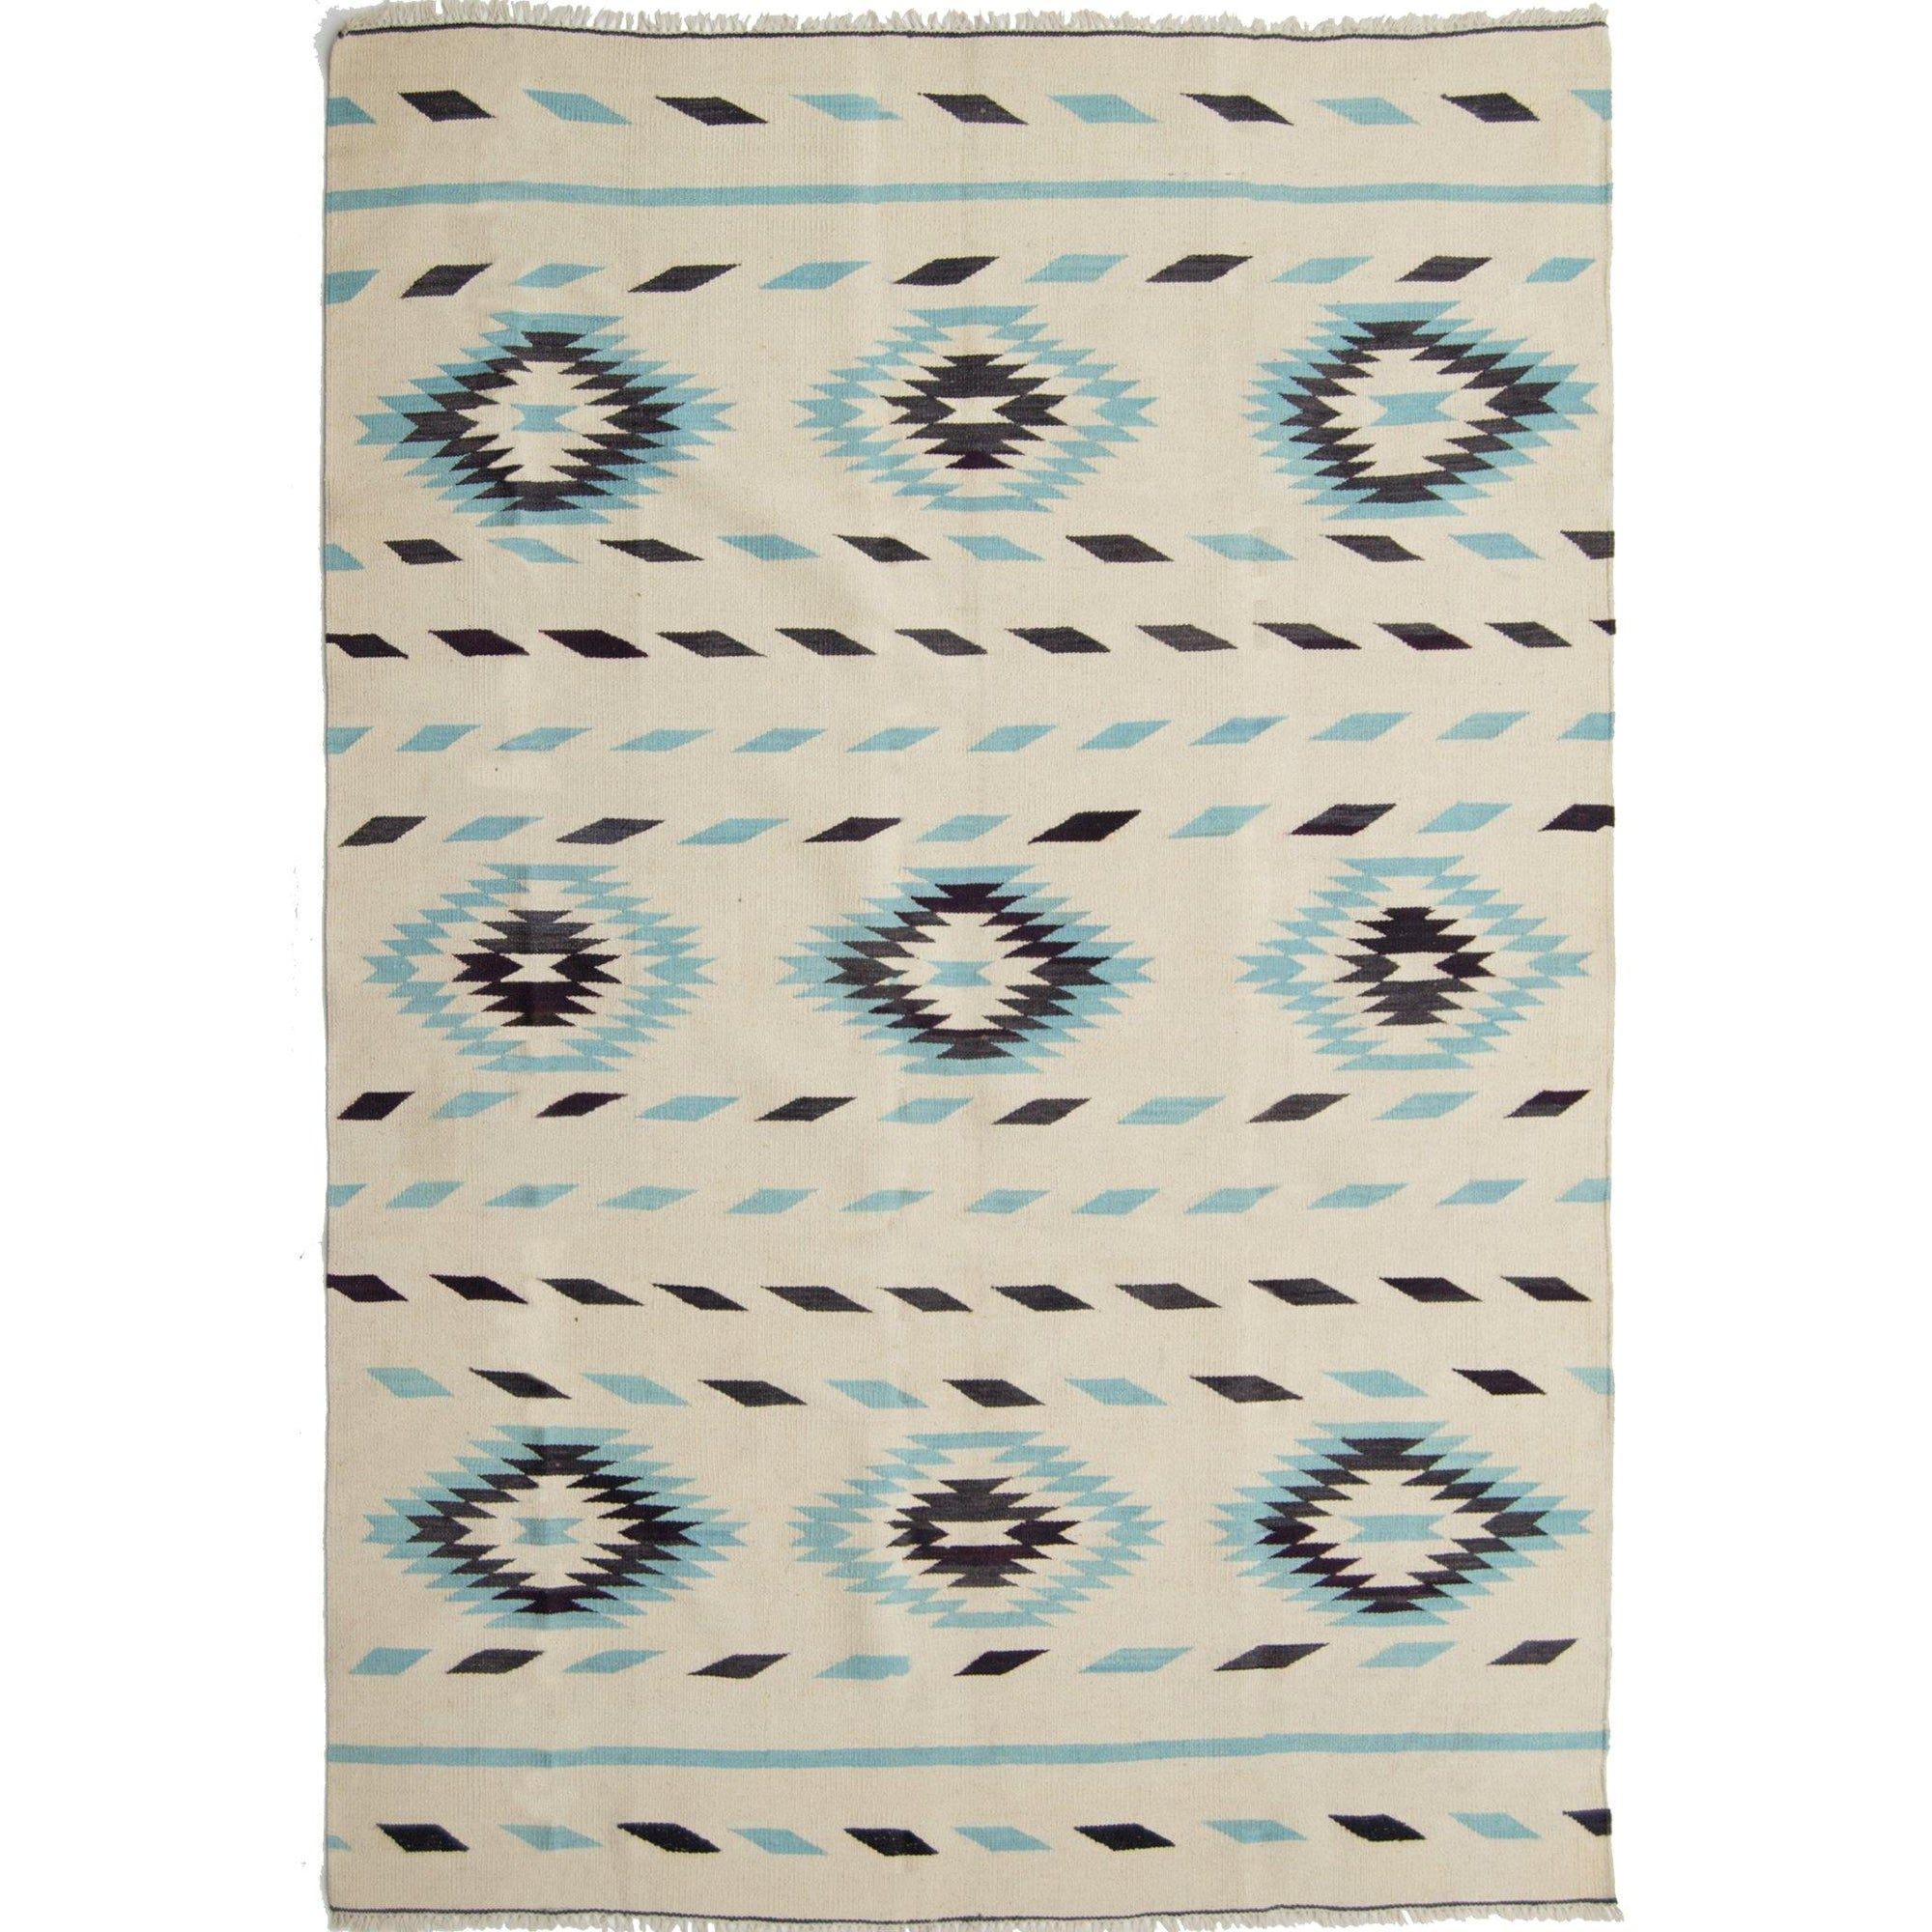 Modern Hand-woven 100% Wool Afghan Chobi Kilim Rug 177cm x 234cm Persian-Rug | House-of-Haghi | NewMarket | Auckland | NZ | Handmade Persian Rugs | Hand Knotted Persian Rugs